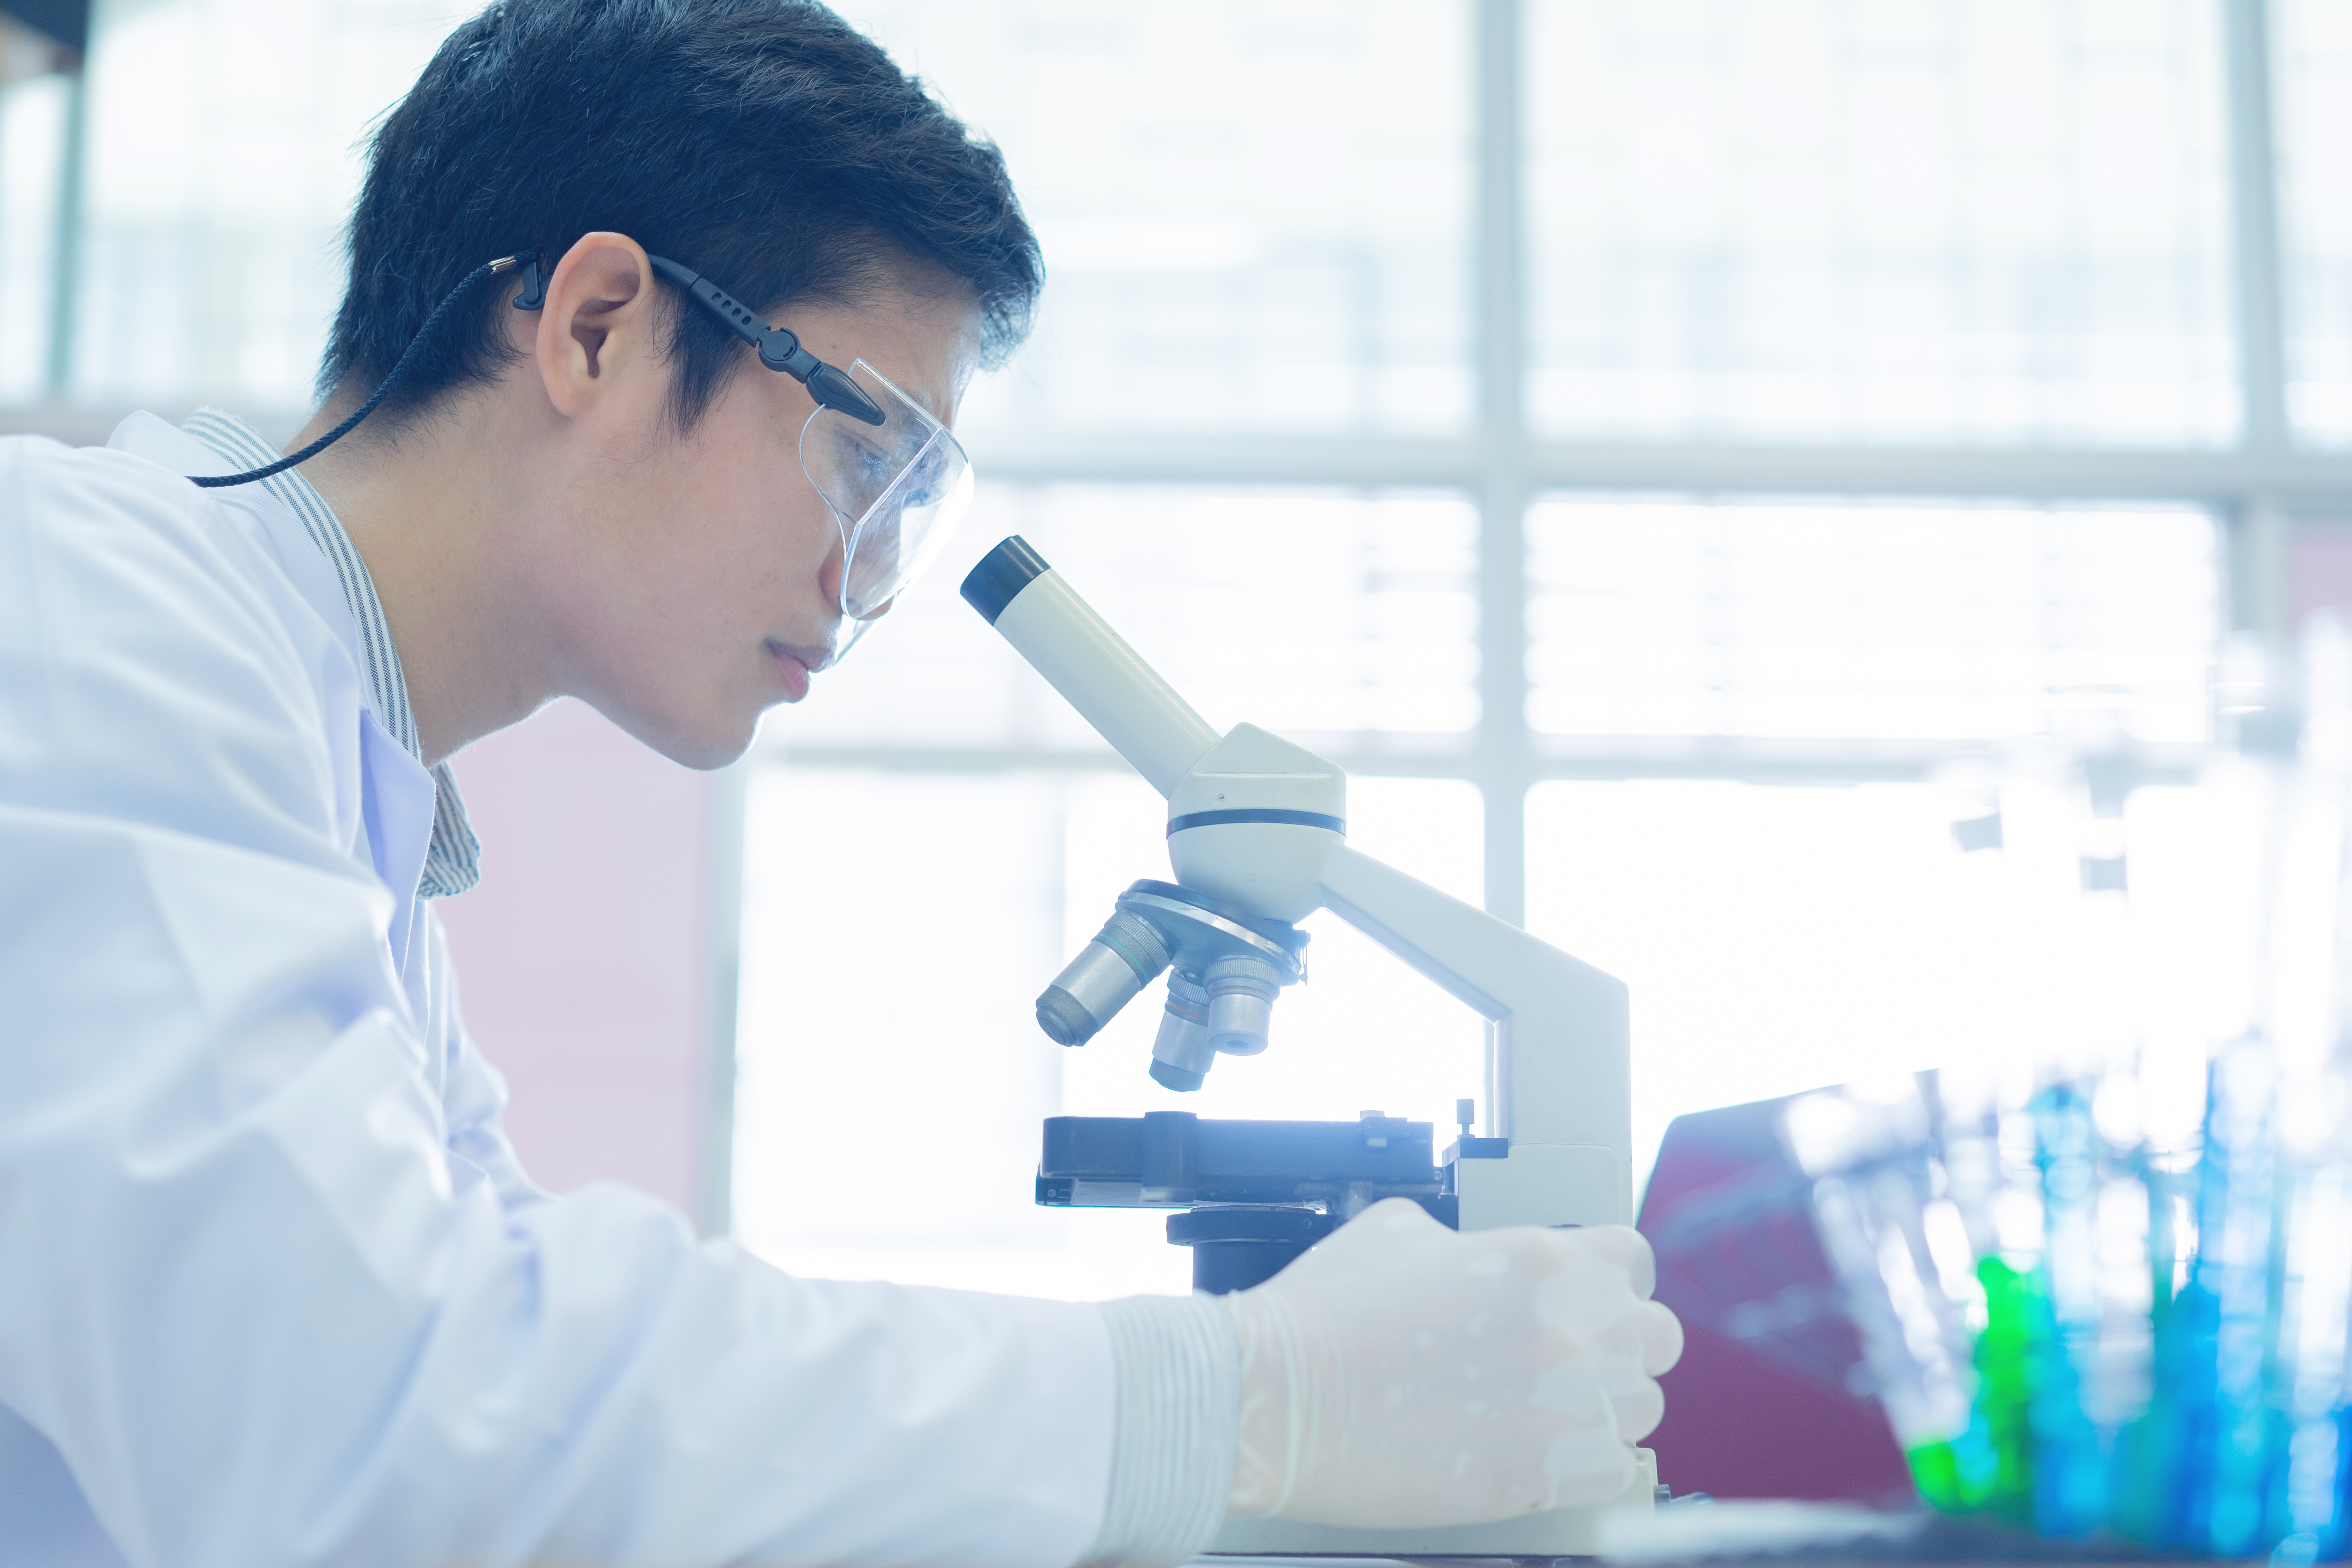 A forensic biologist works in the lab